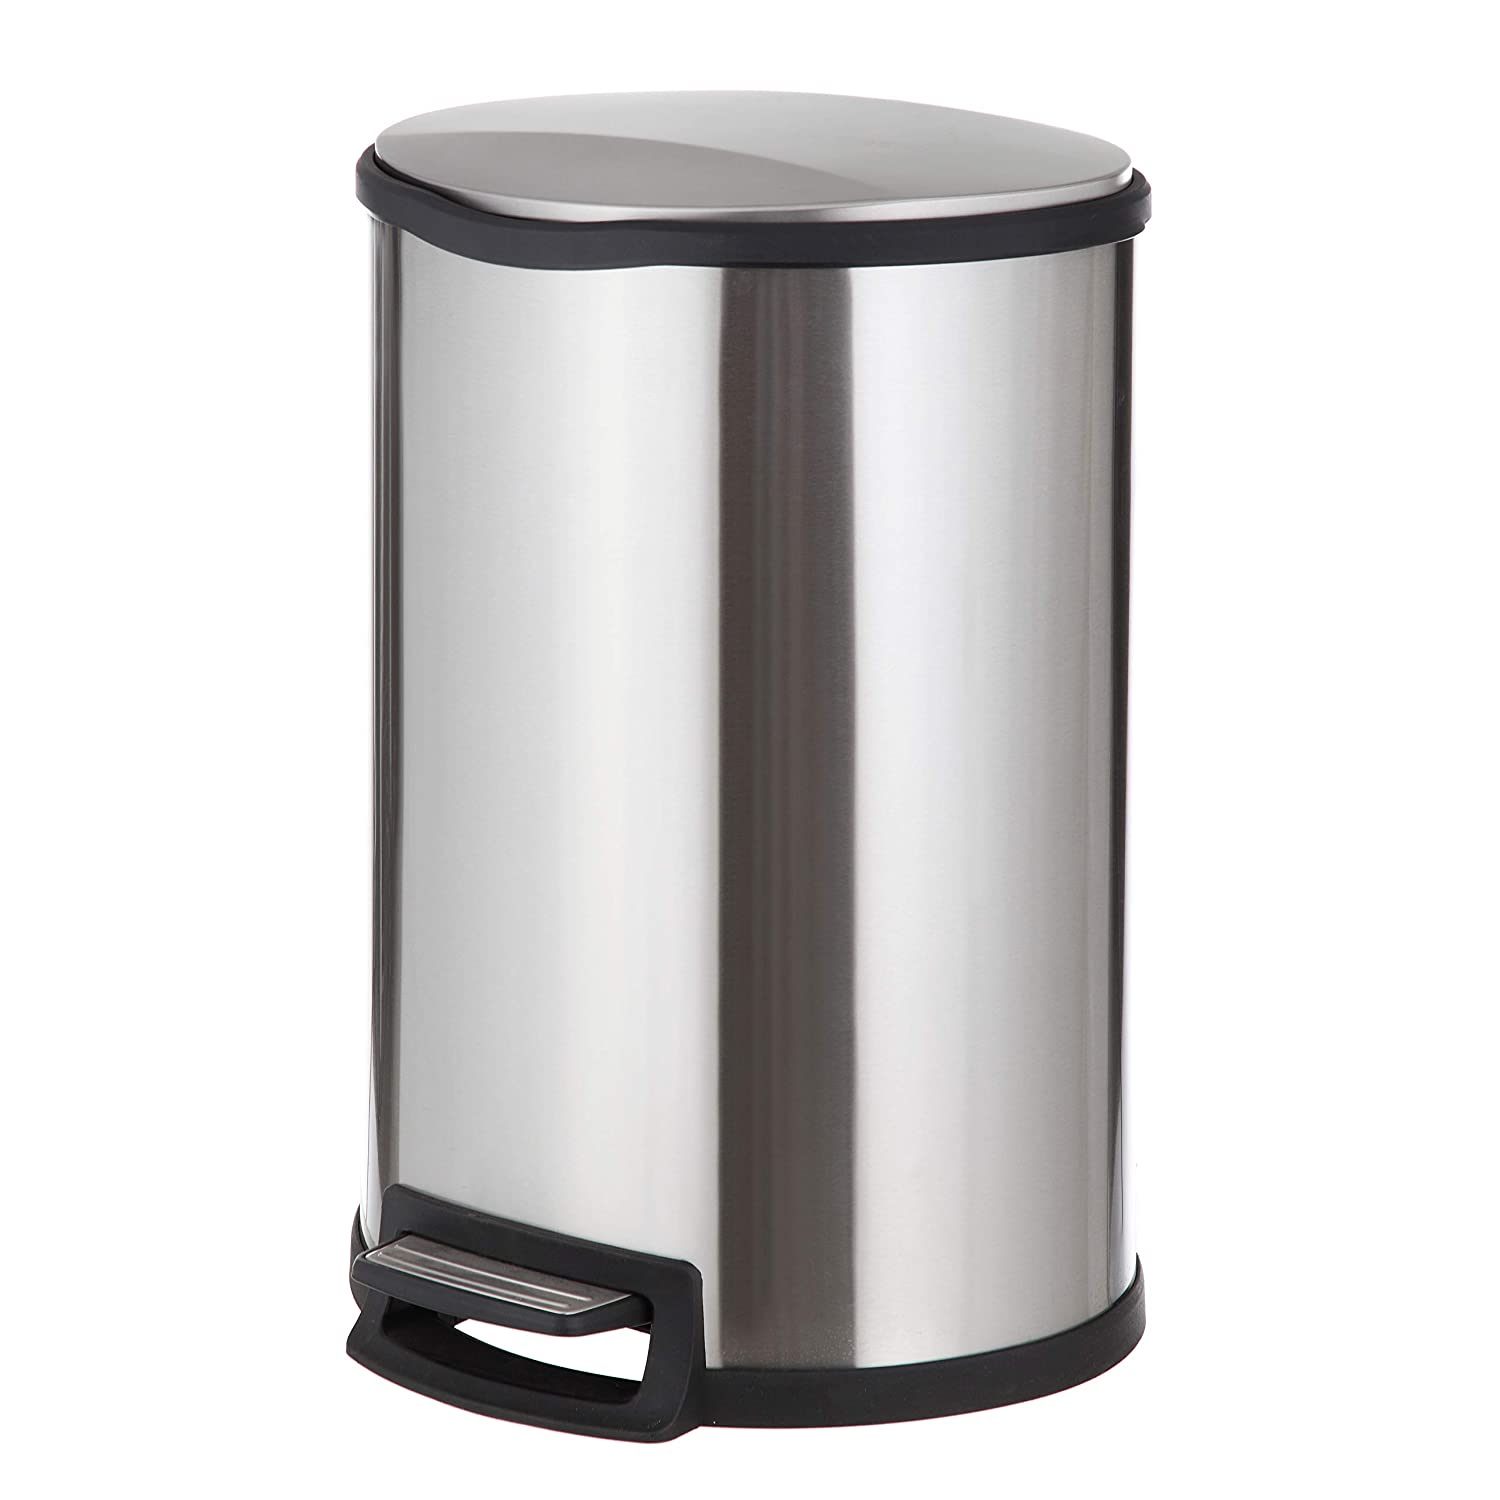 Home Zone Stainless Steel Kitchen Trash Can with Semi-Round Design and Step Pedal | 45 Liter / 12 Gallon Storage with Removable Plastic Trash Bin Liner, Silver